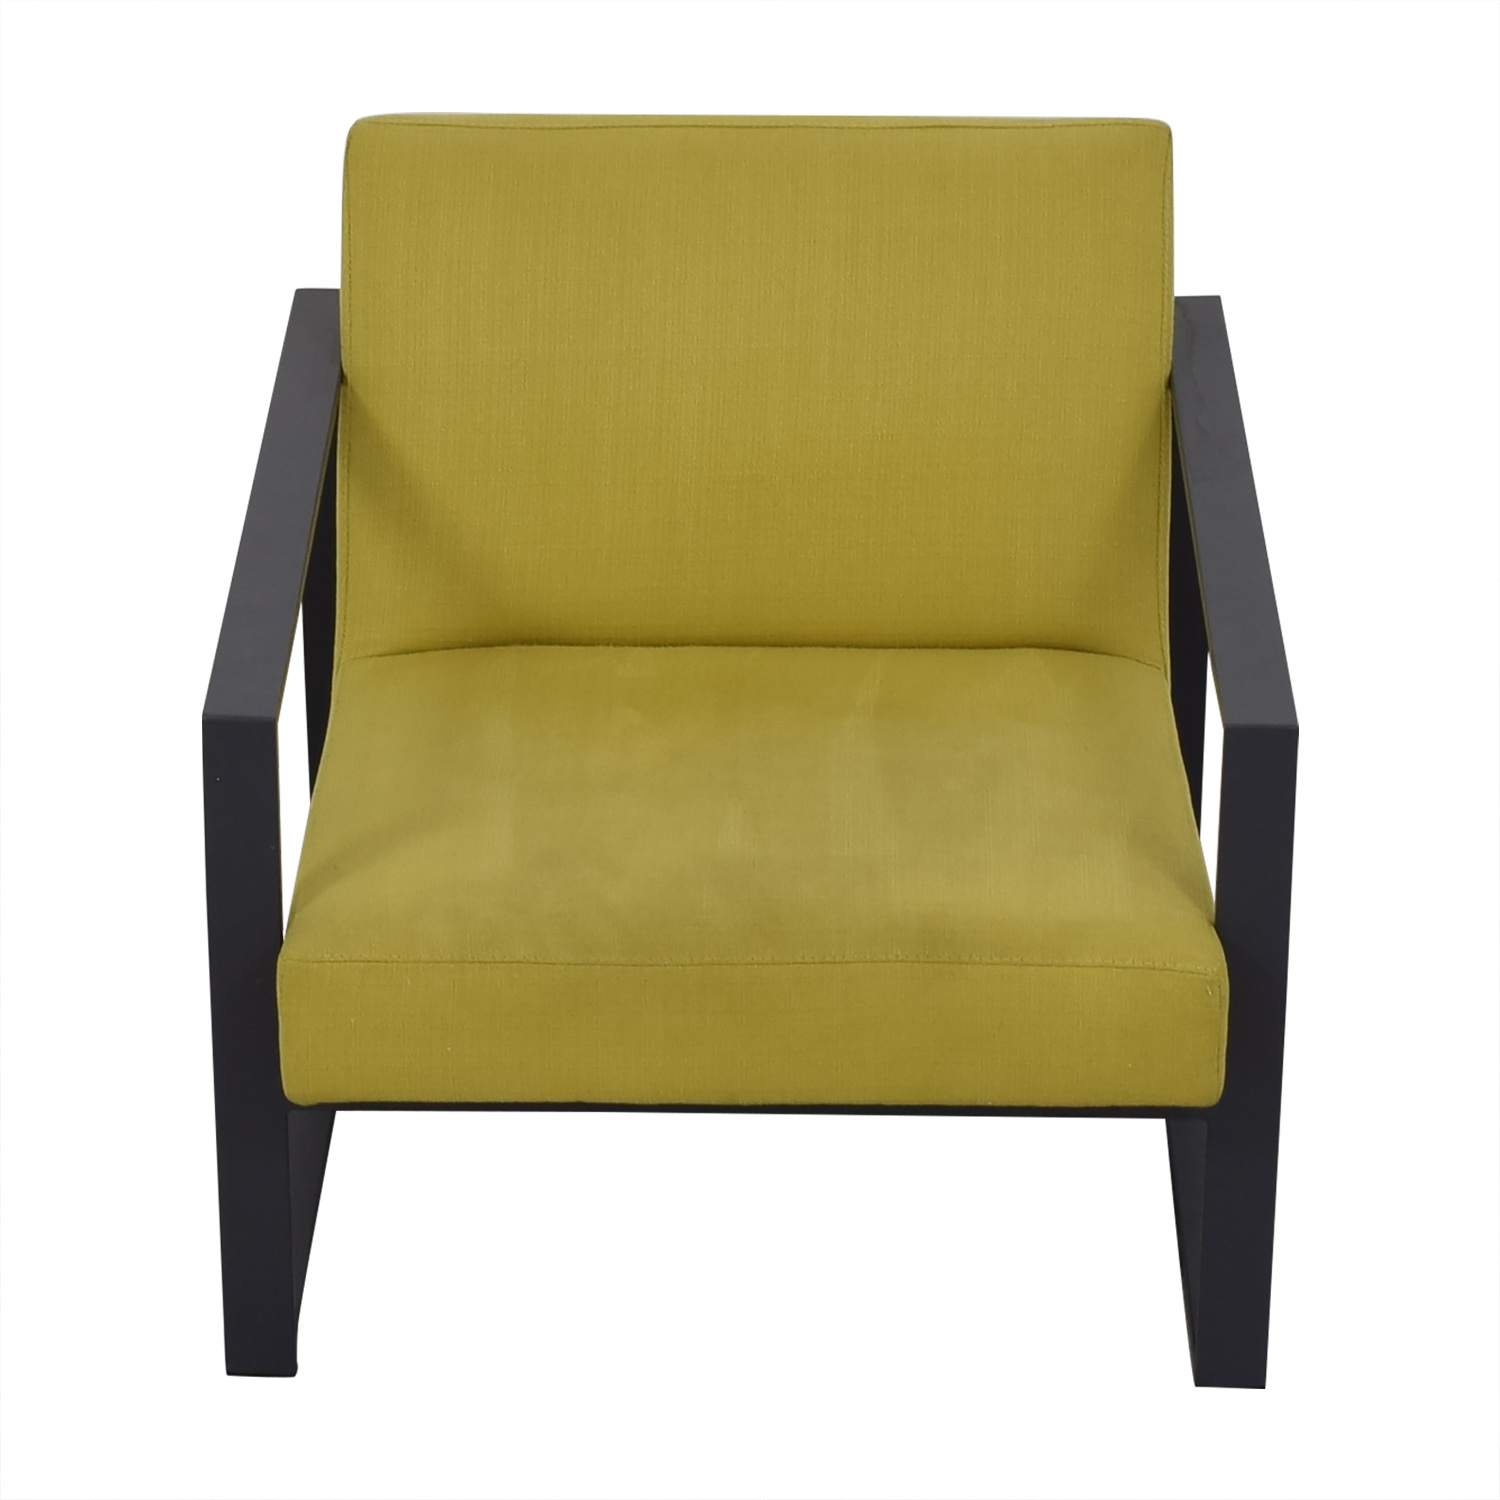 CB2 CB2 Specs Chair on sale